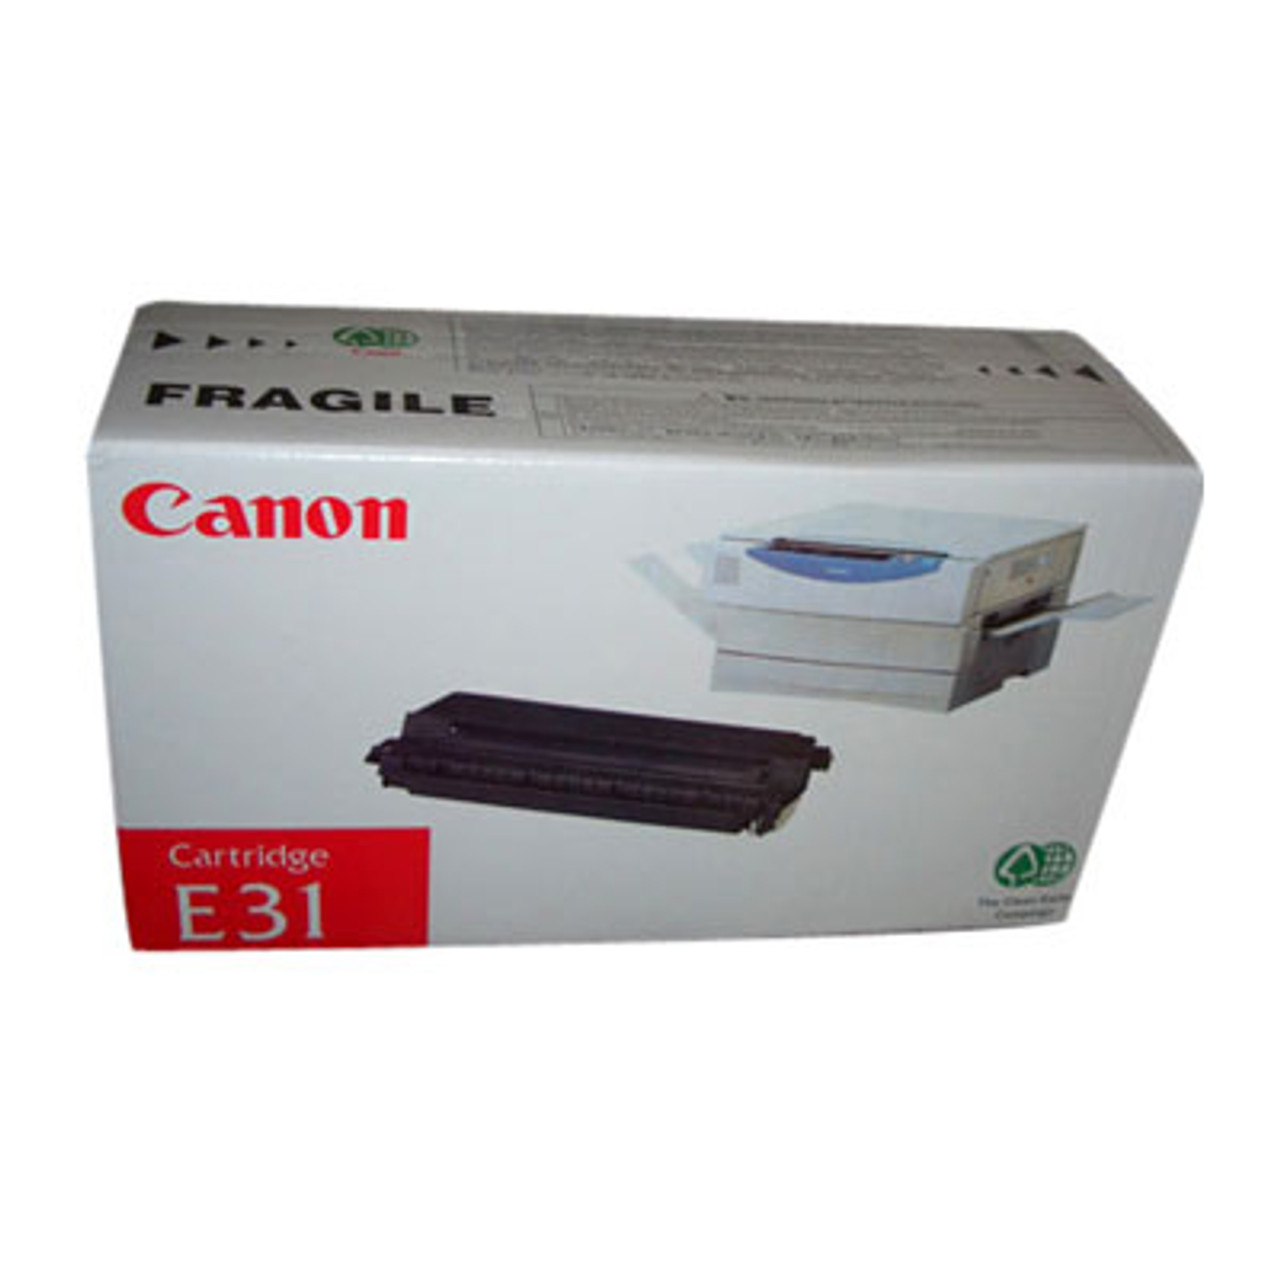 Image for Canon E31 Toner Cartridge 4,000 pages Black CX Computer Superstore